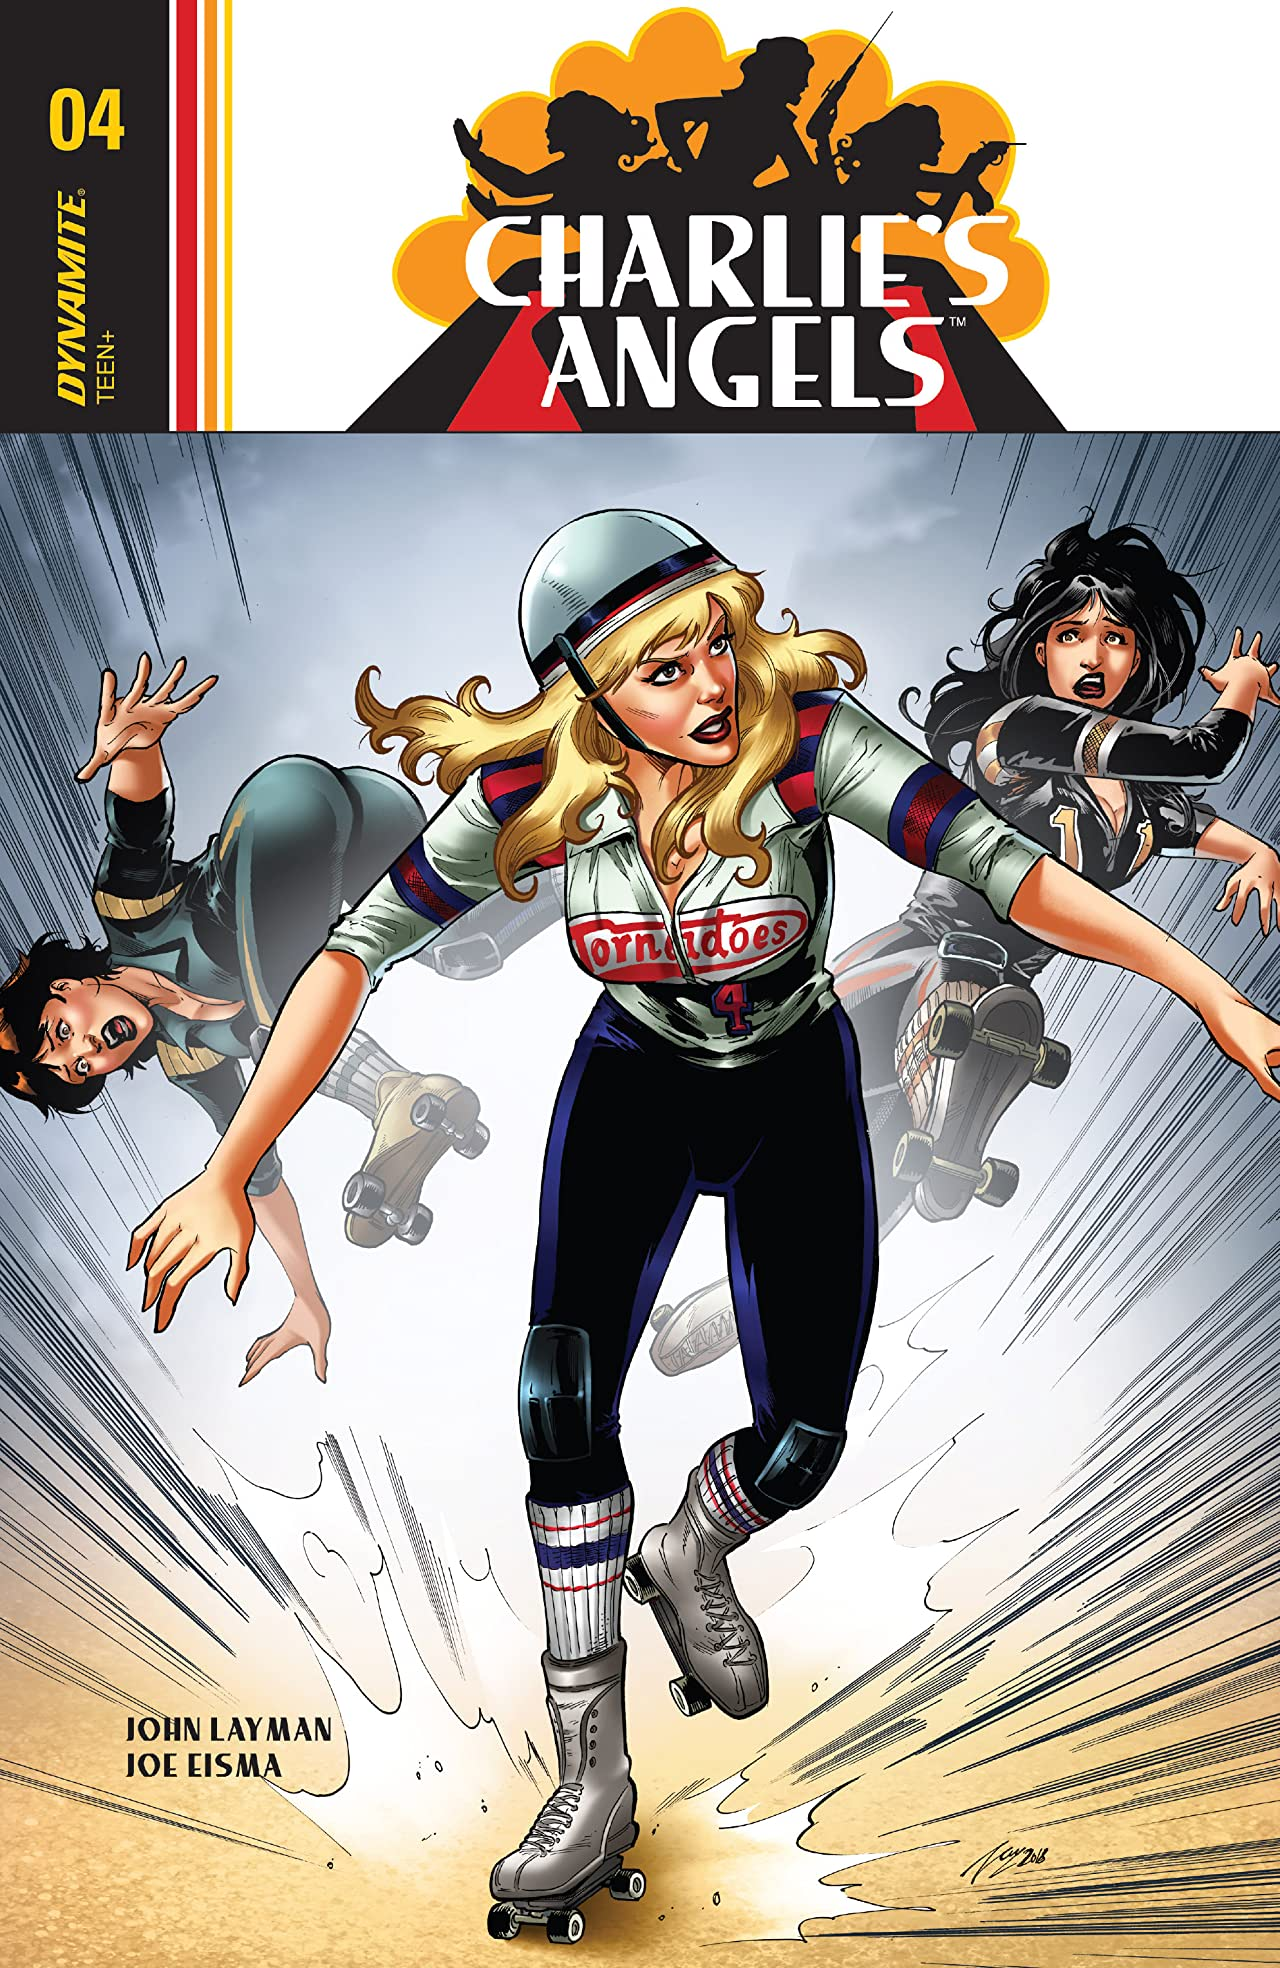 Charlie's Angels #4